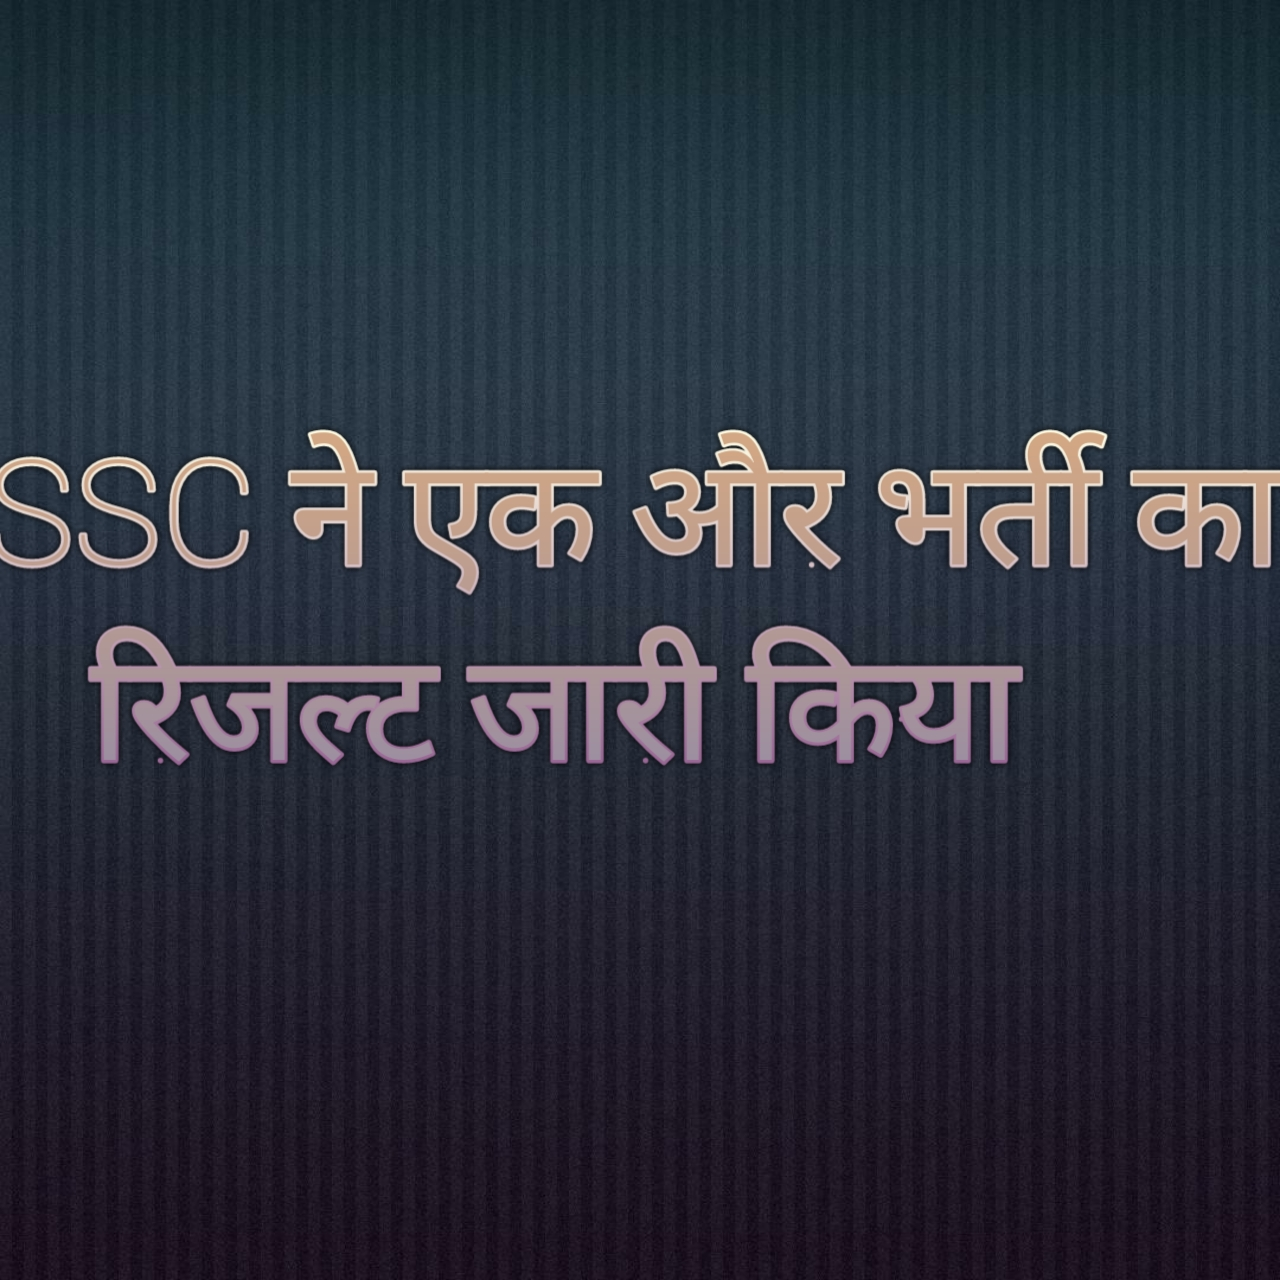 SSC CPO Tier-II result outcheck cut off